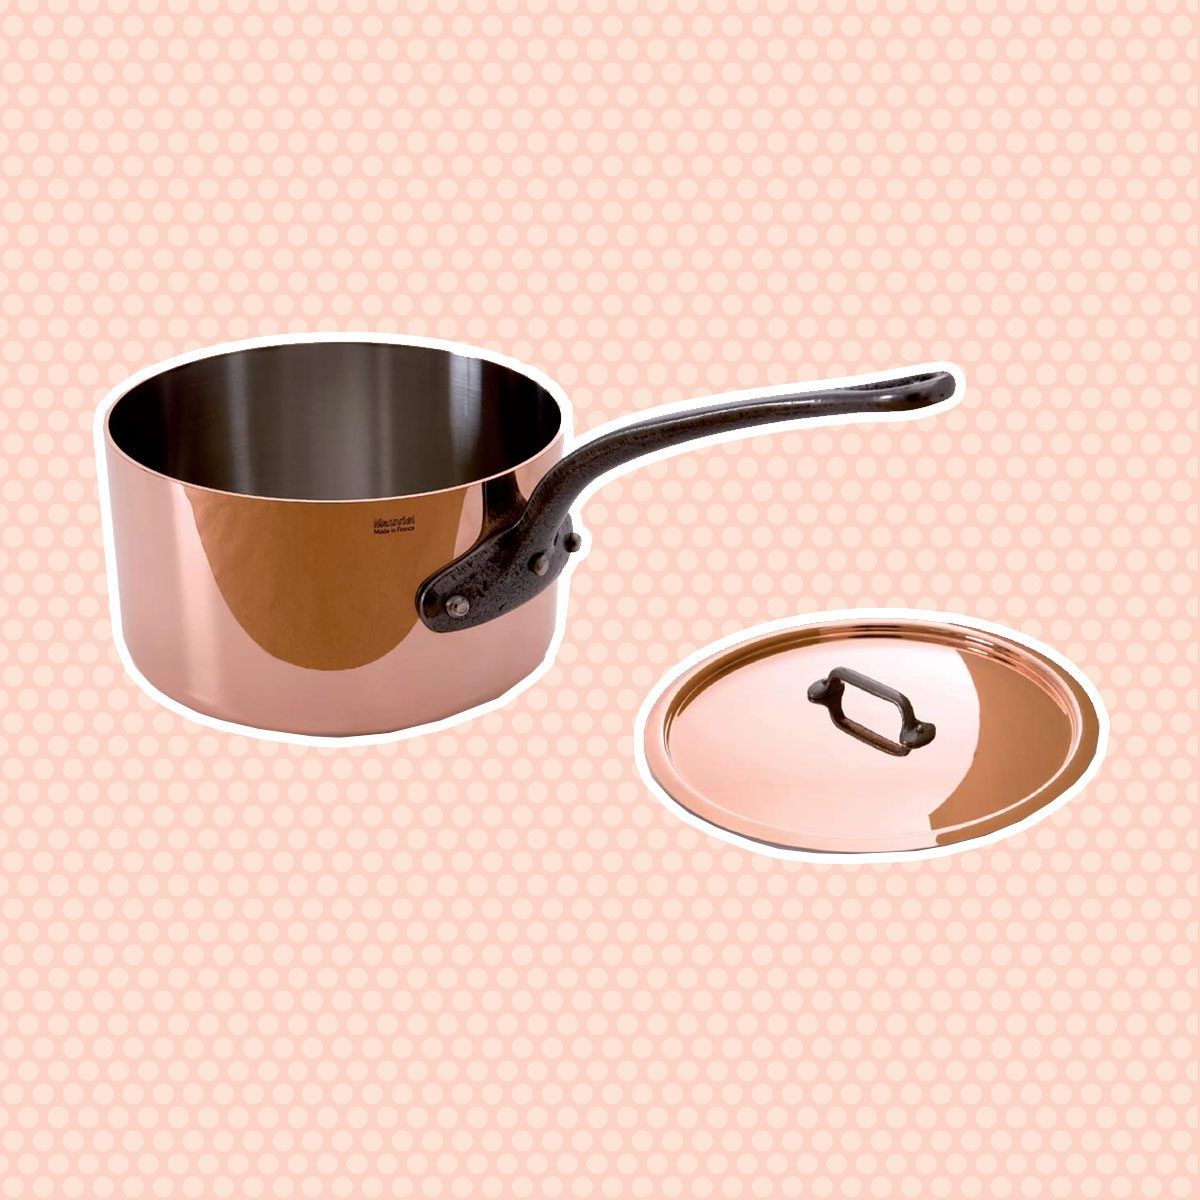 Mauviel Made In France M'Heritage Copper M250C 3-1/2-Quart Saucepan with Lid, Cast Iron Handle